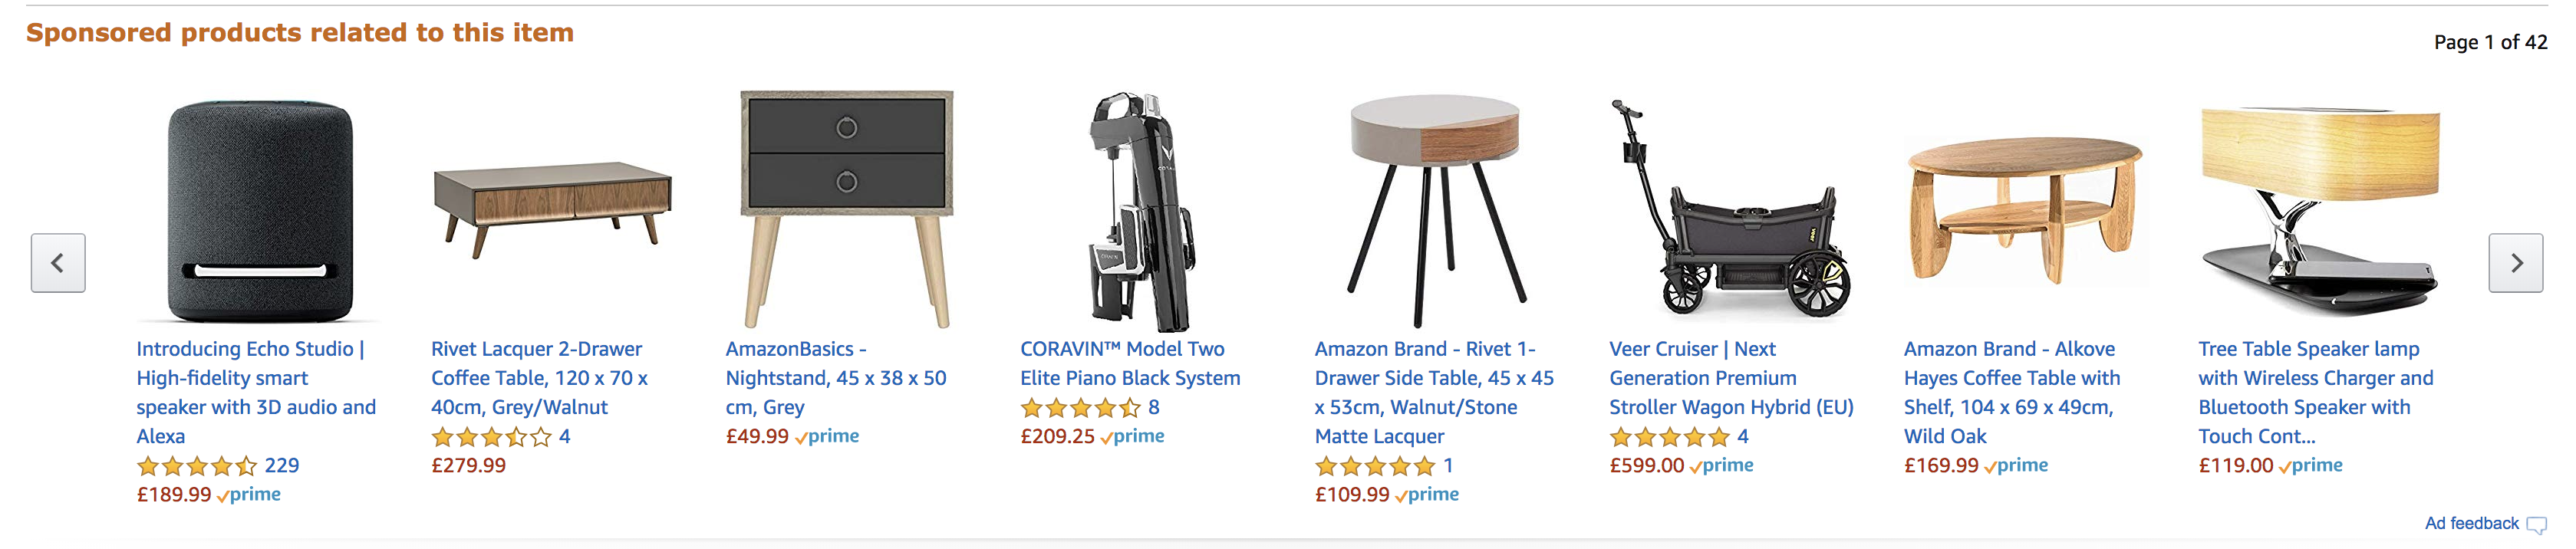 Screenshot of product display ads on Amazon